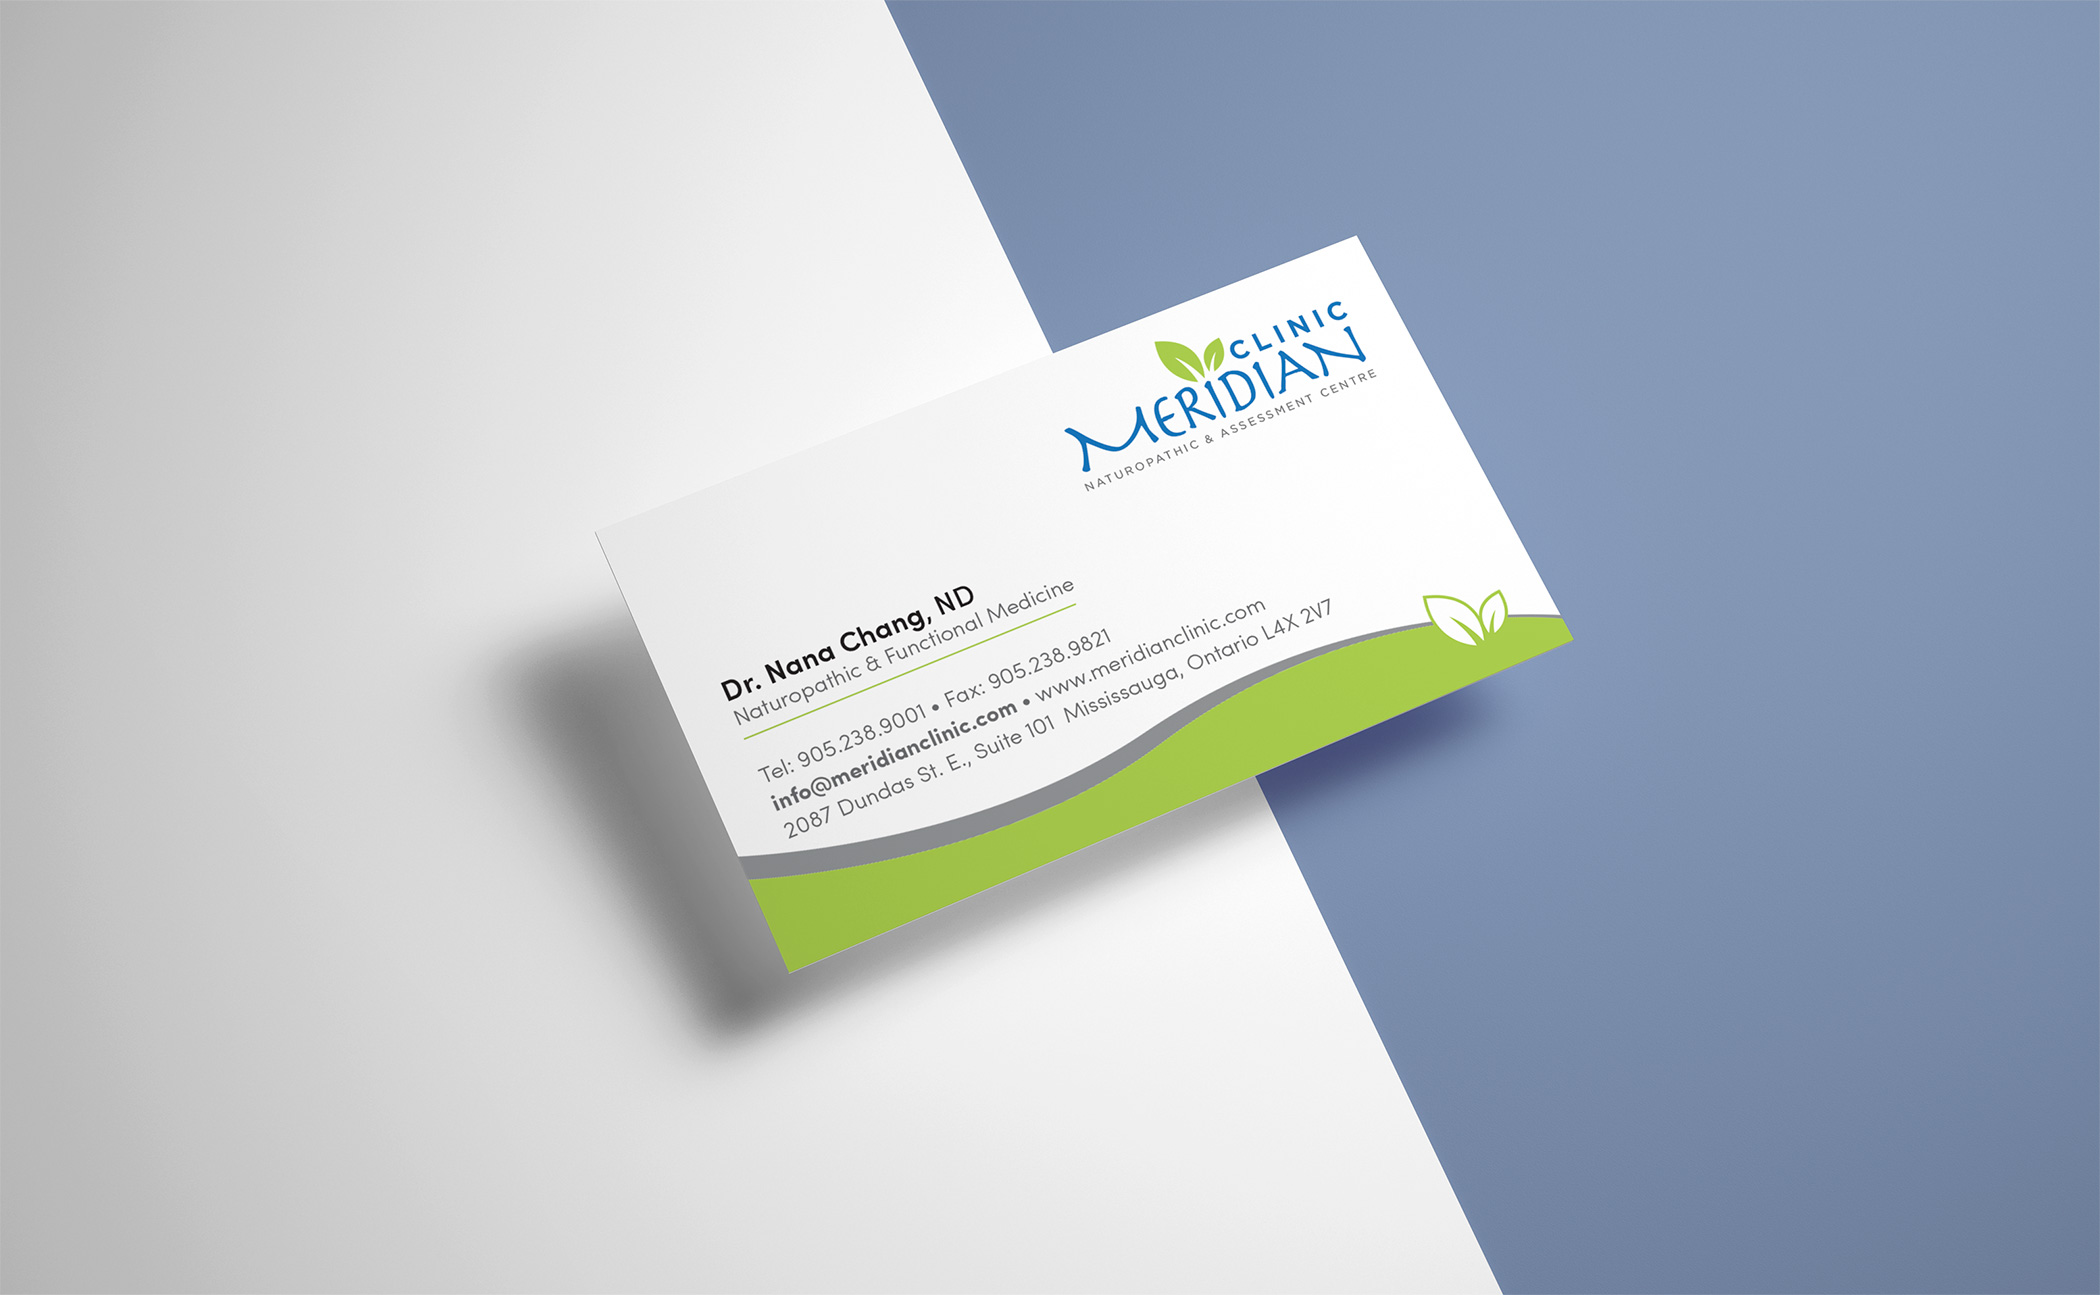 Business card designs logo print meridian clinic business cards by logo print meridian clinic business cards by logo print reheart Gallery